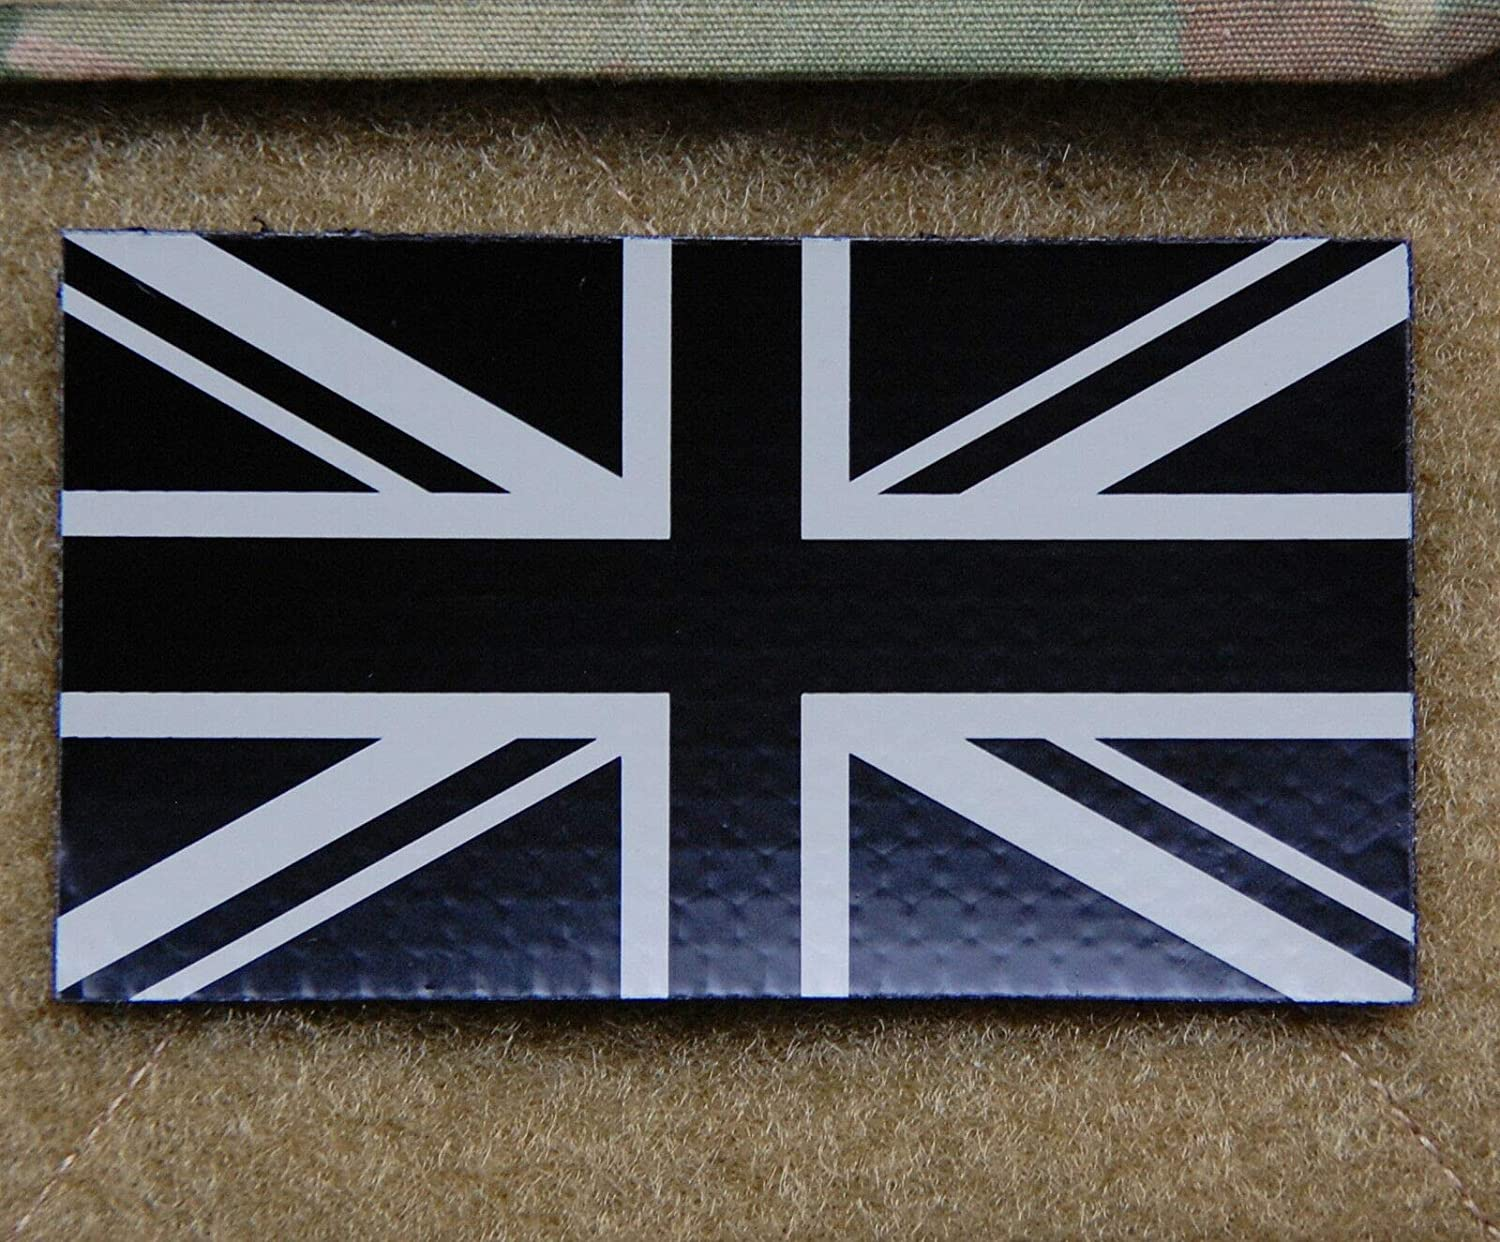 UK IR Flag Patch UKSF SAS Tampa Mall Super beauty product restock quality top SBS Union Infrar British SRR Army SFSG